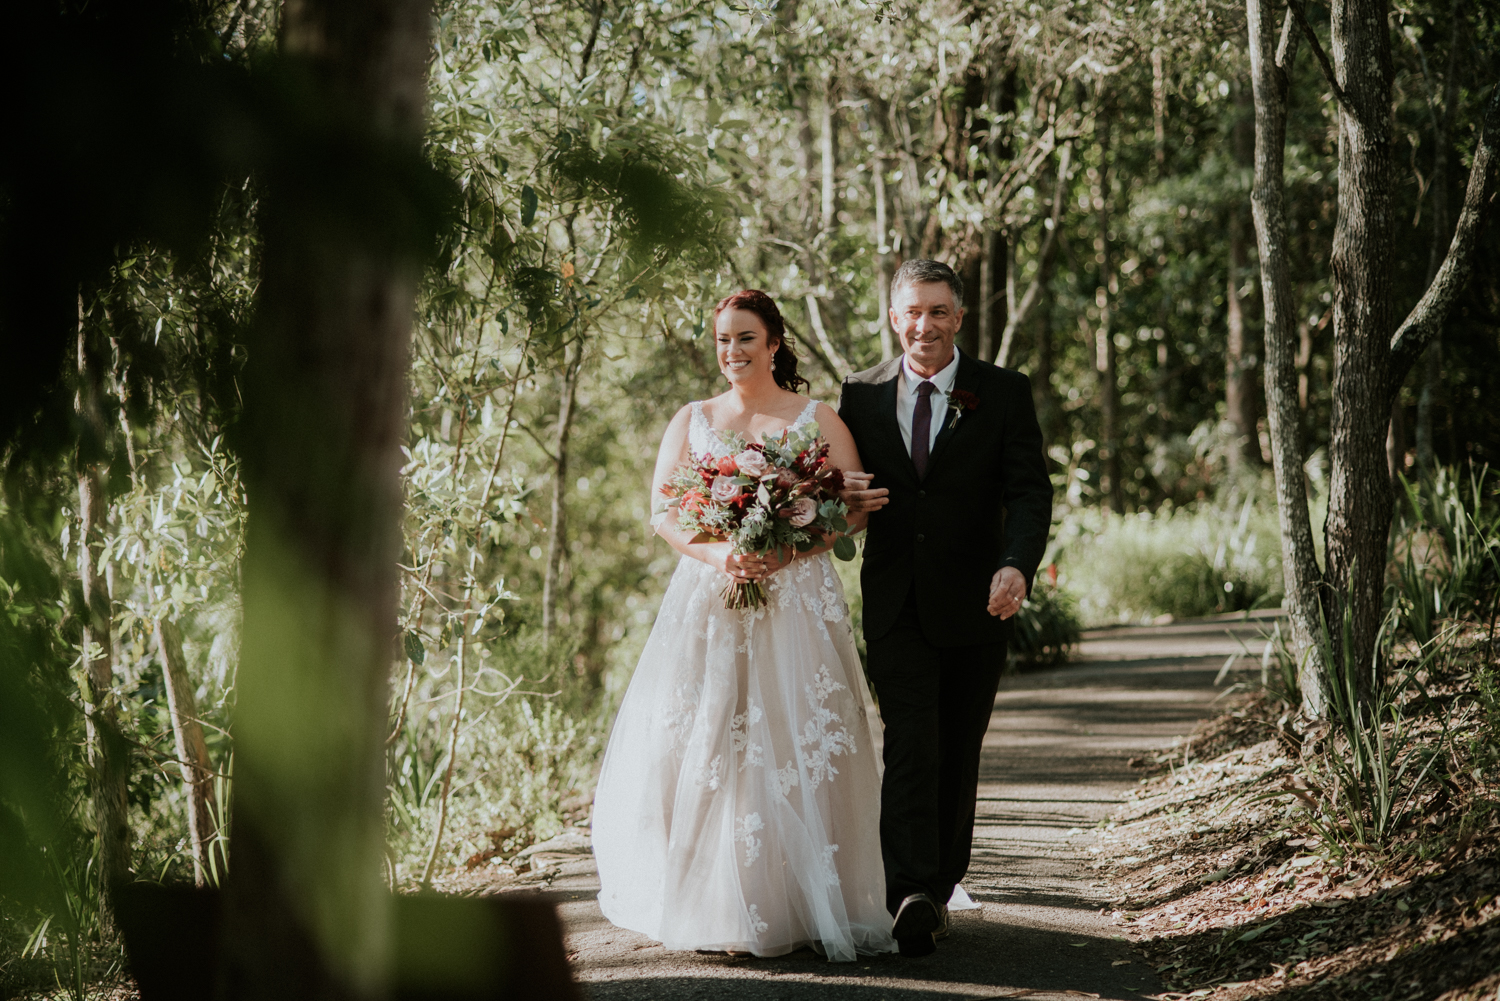 Brisbane Wedding Photographer | Walkabout Creek Photography-47.jpg